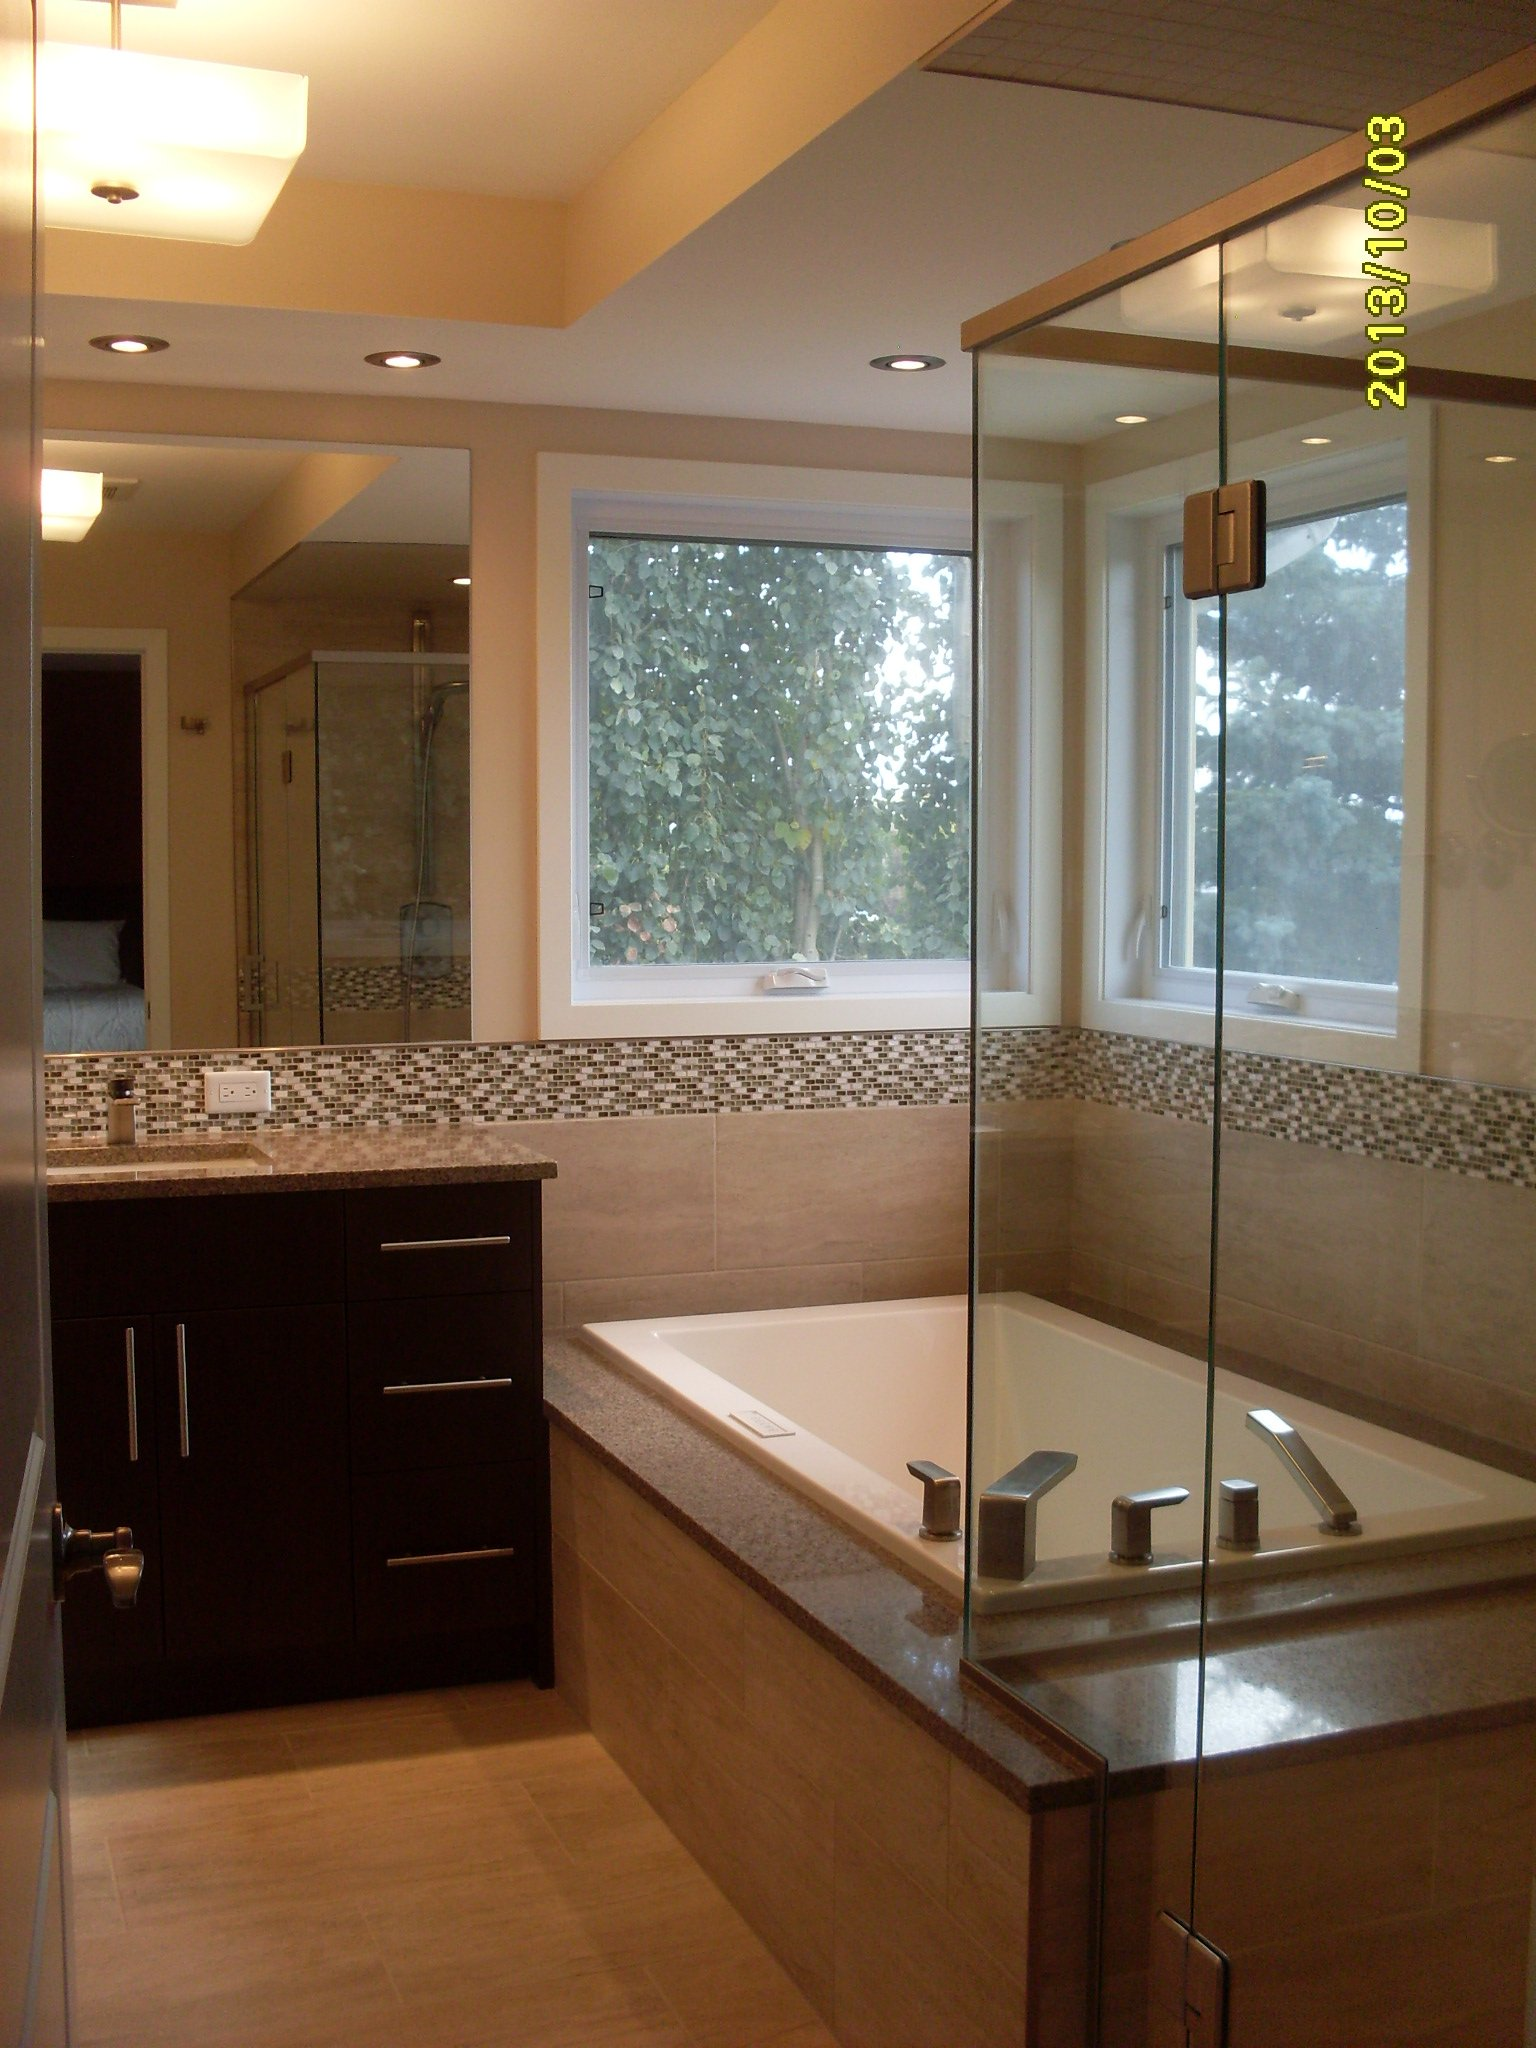 Bathroom Renovation Guide: Top Bathroom Renovation Tips